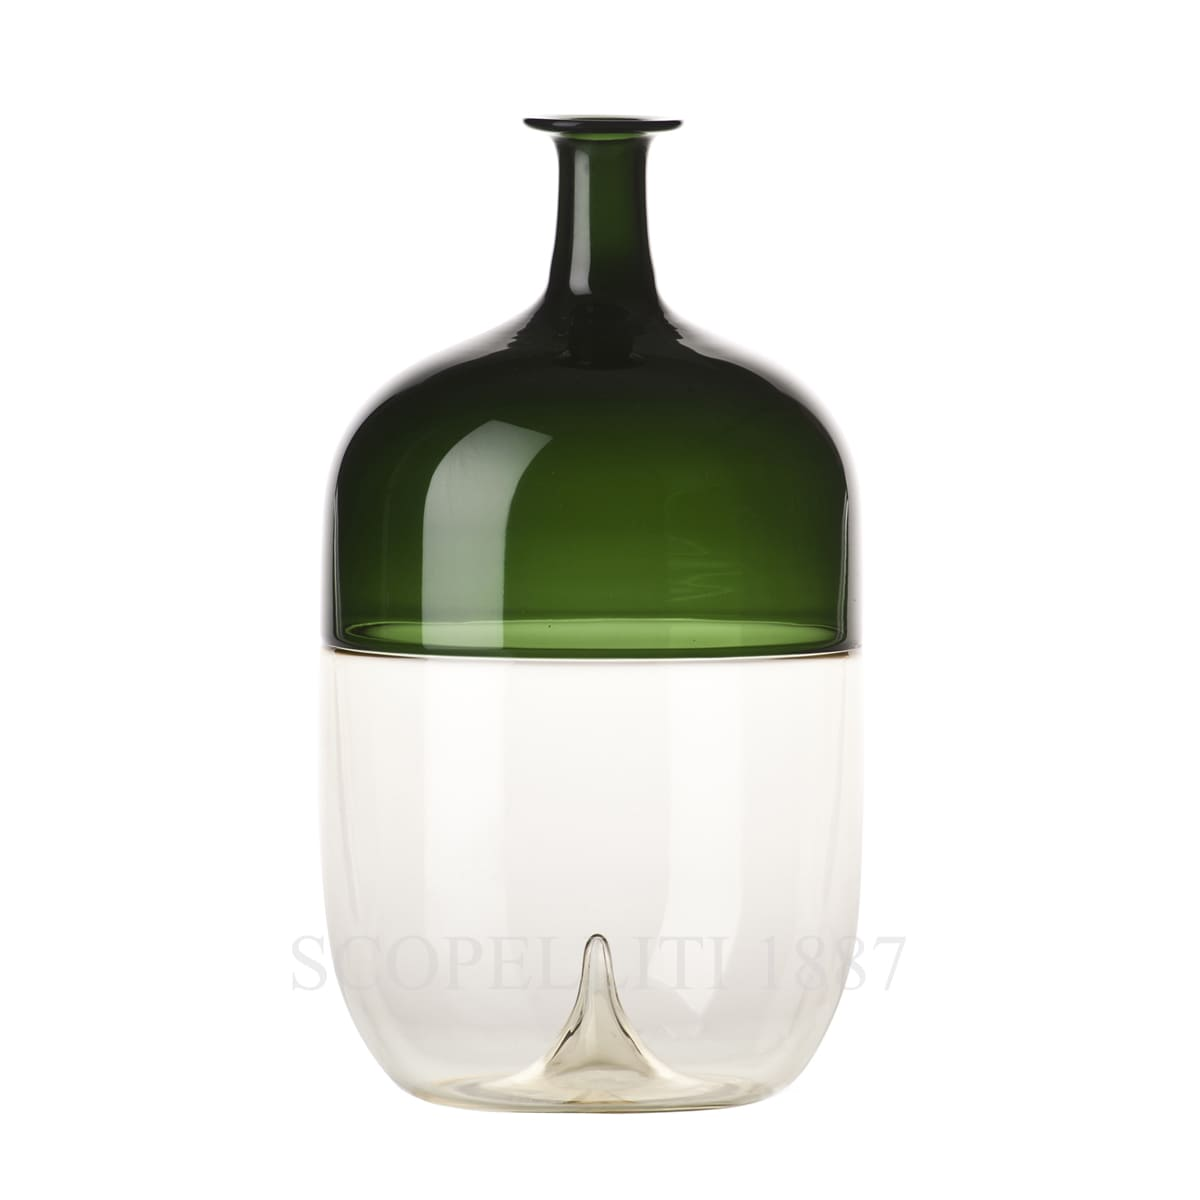 Venini Bolle straw yellow/grass green 503.02 Bottle